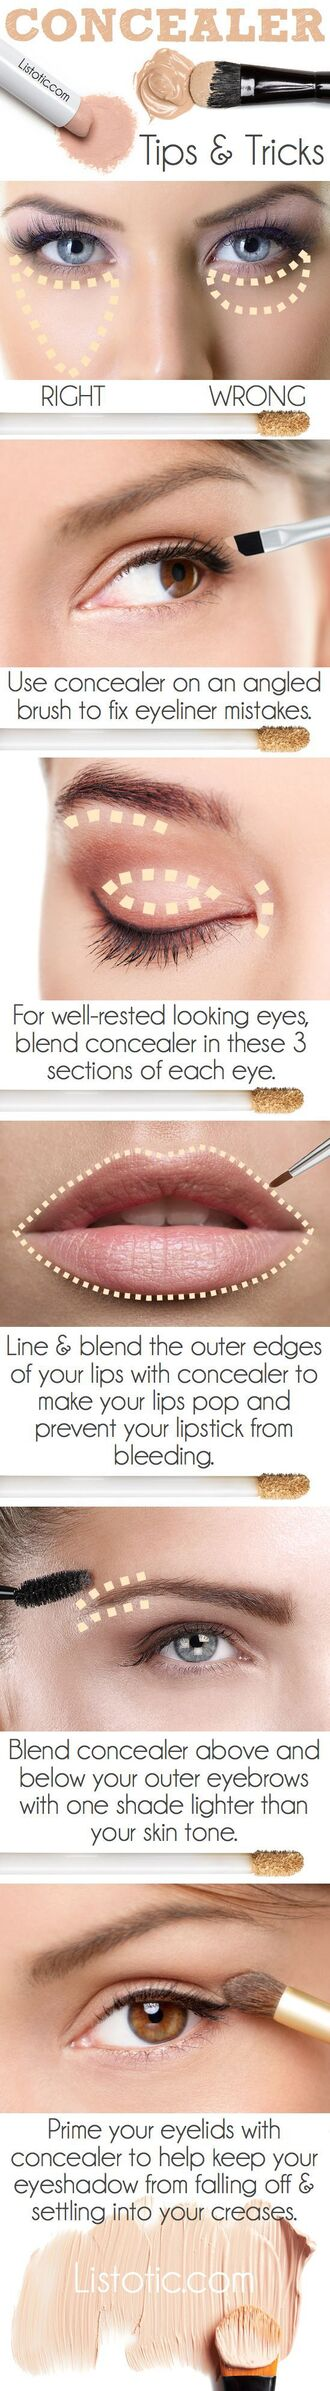 make-up concealer beauty hacks eye makeup